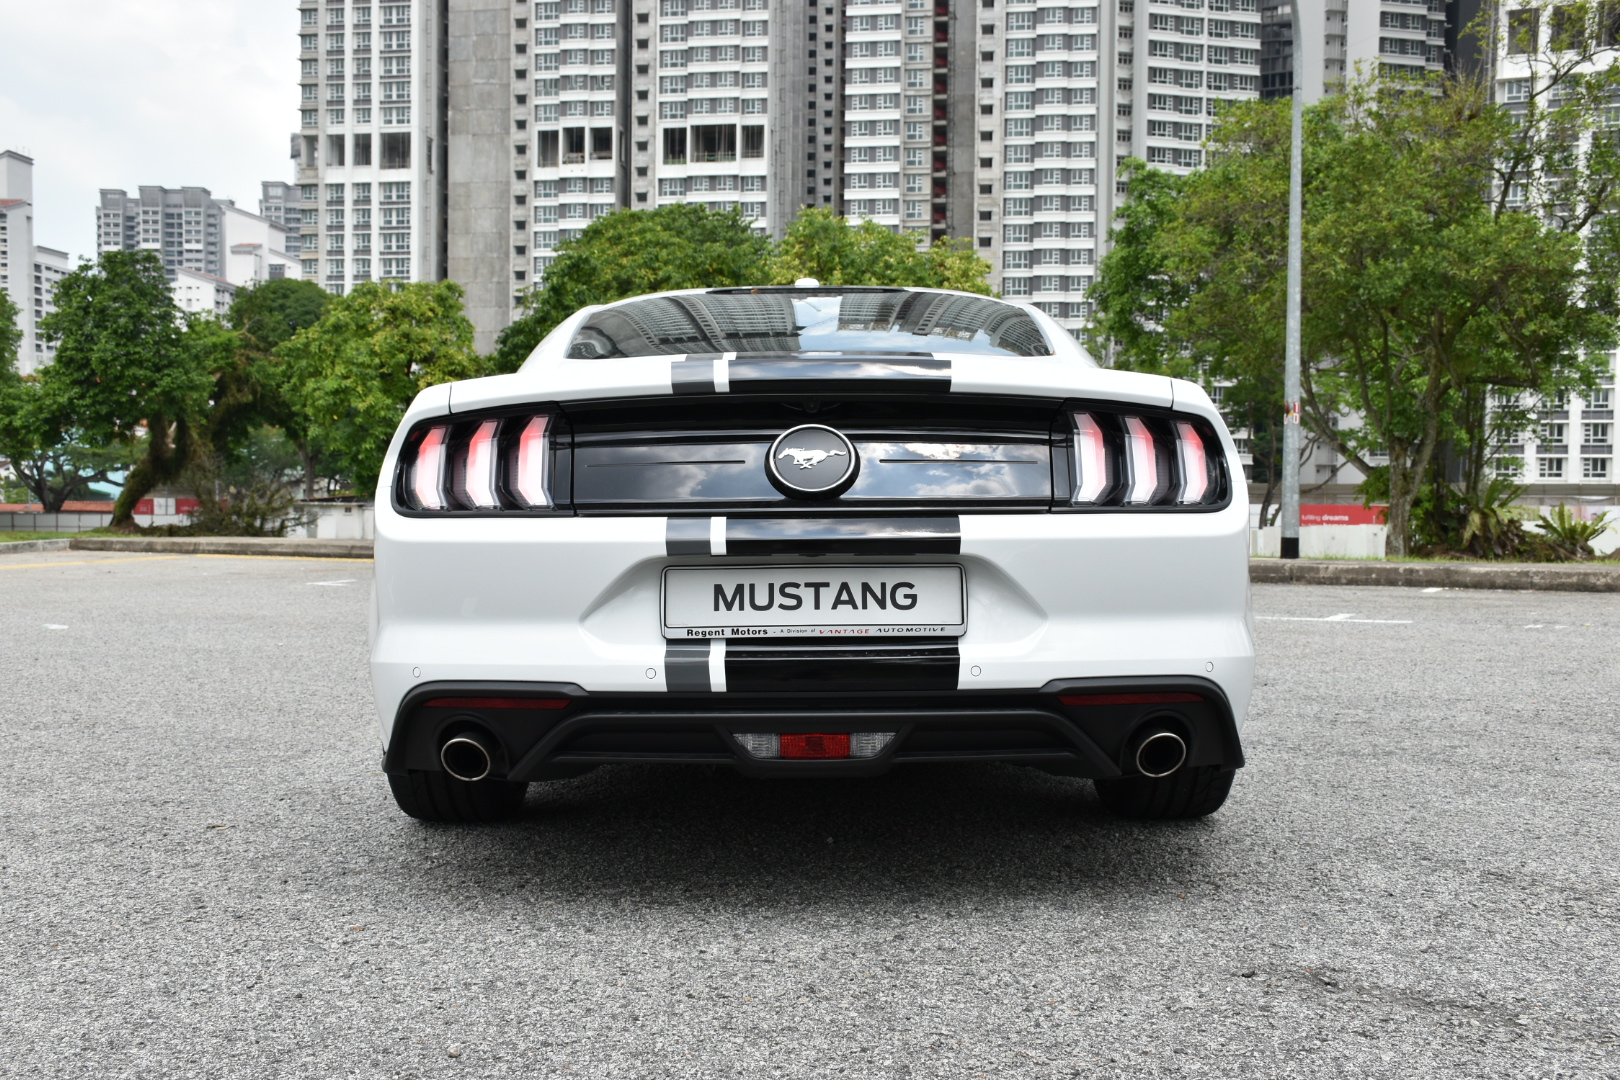 Ford Mustang 2 3 review: All-American hero | Torque